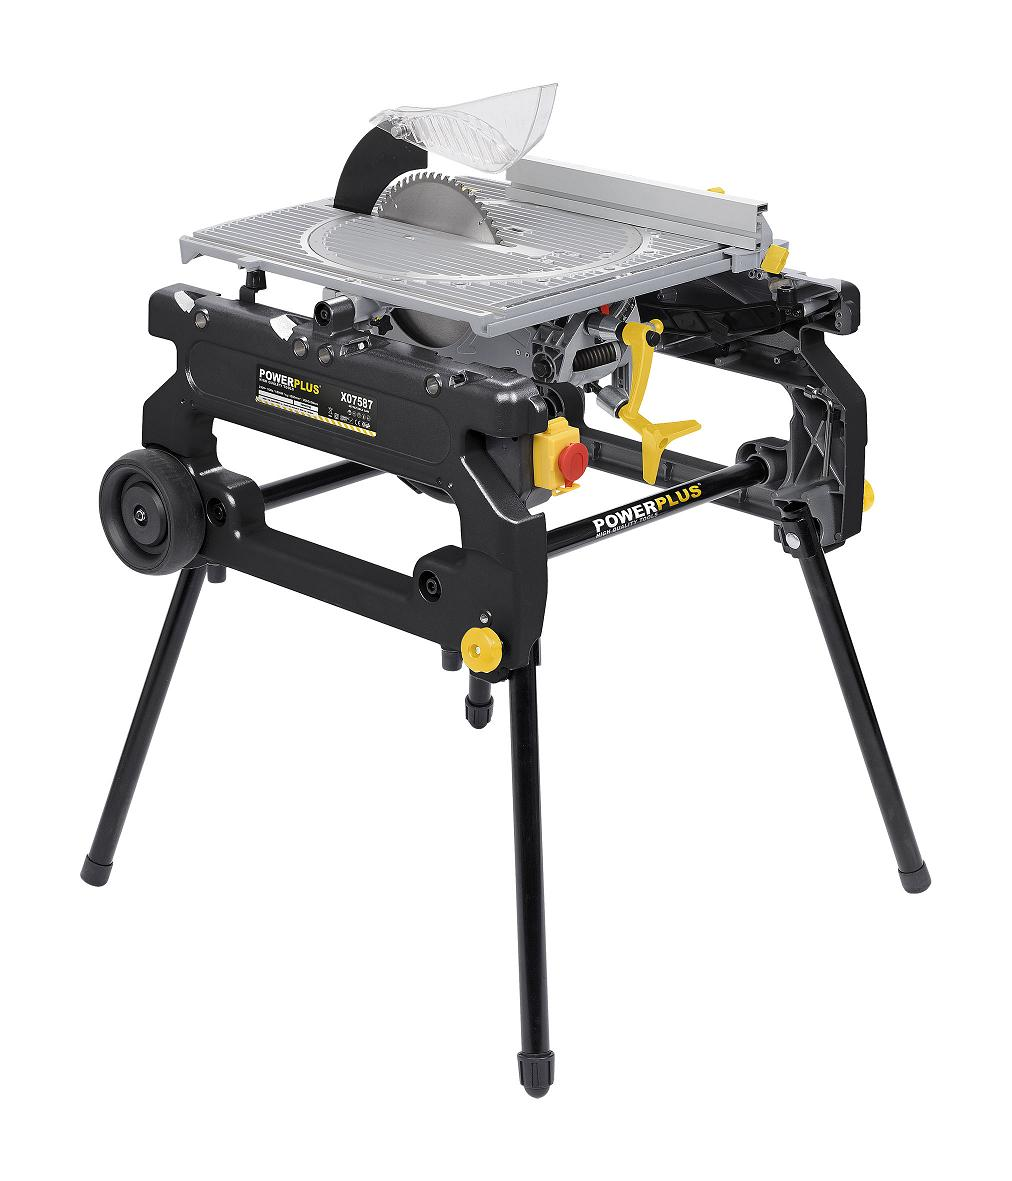 Flipover Chop Saw Miter Saw Table Saw Circular Saw Saw Table Saw 2000 Watts Ebay